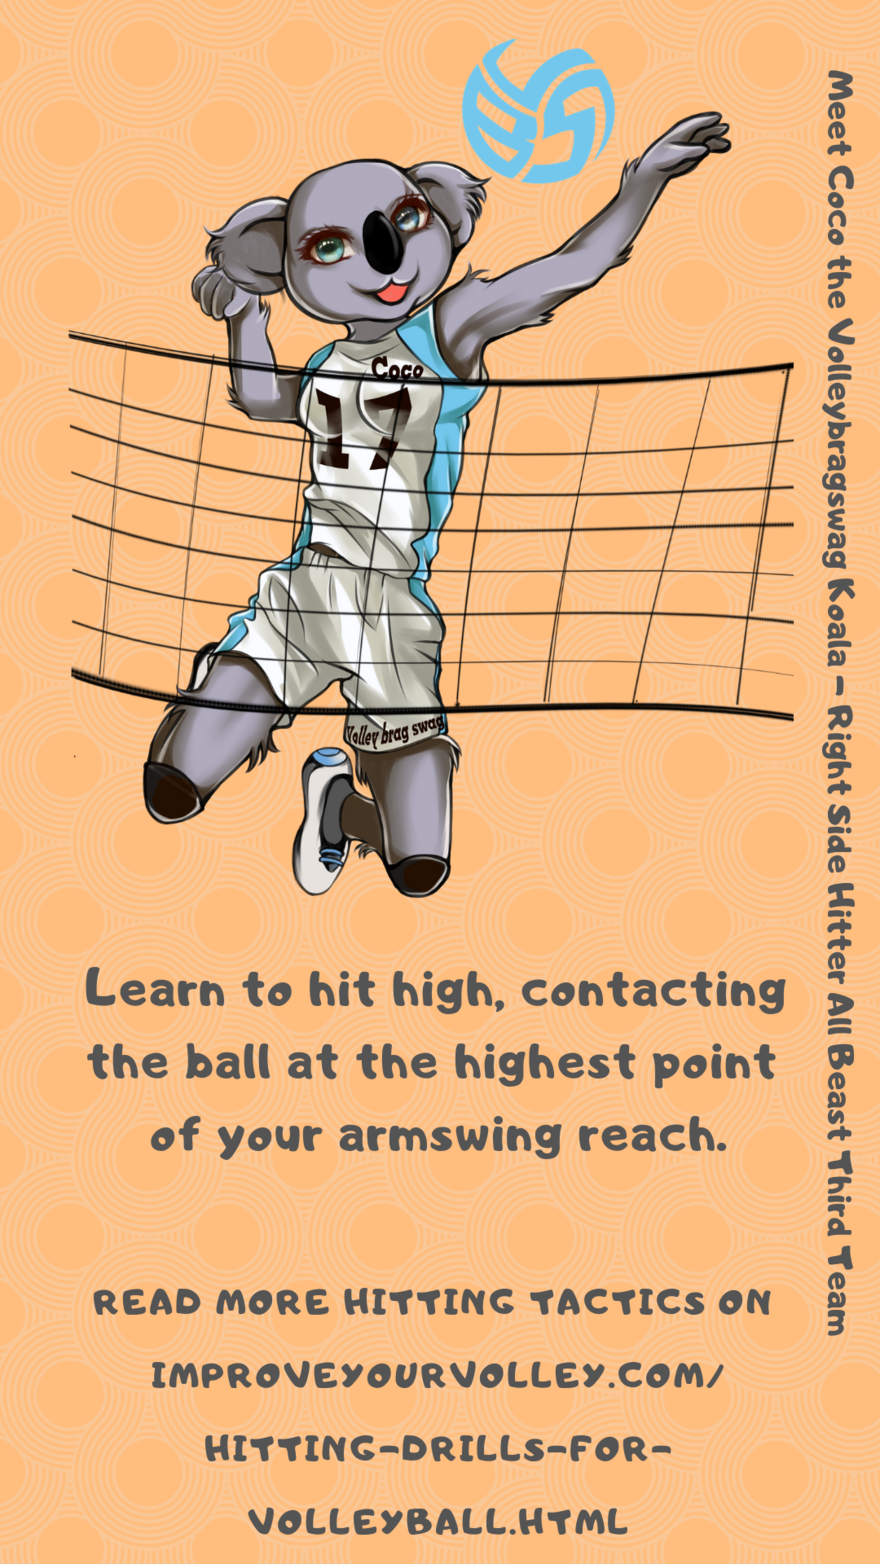 Hitting Tactics: Learn to hit high contacting the ball at the highest point of your reach and spike jump.